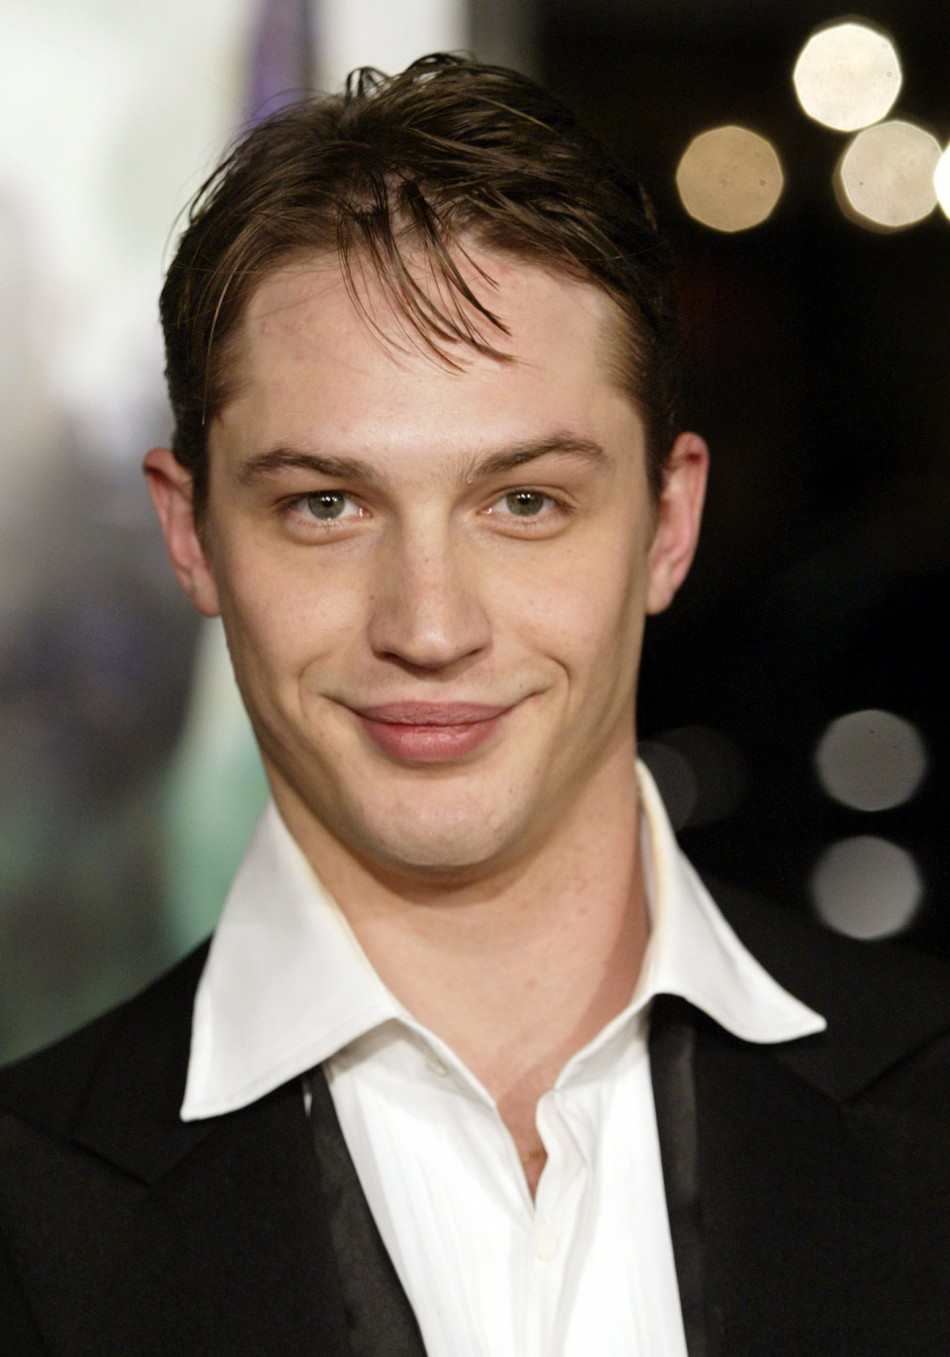 With his breakthrough performance as quotEamesquot in Christopher Nolans 2010 science fiction thriller, Inception 2010, English actor Tom Hardy has been brought to the attention of mainstream audiences worldwide. But the versatile actor has been st